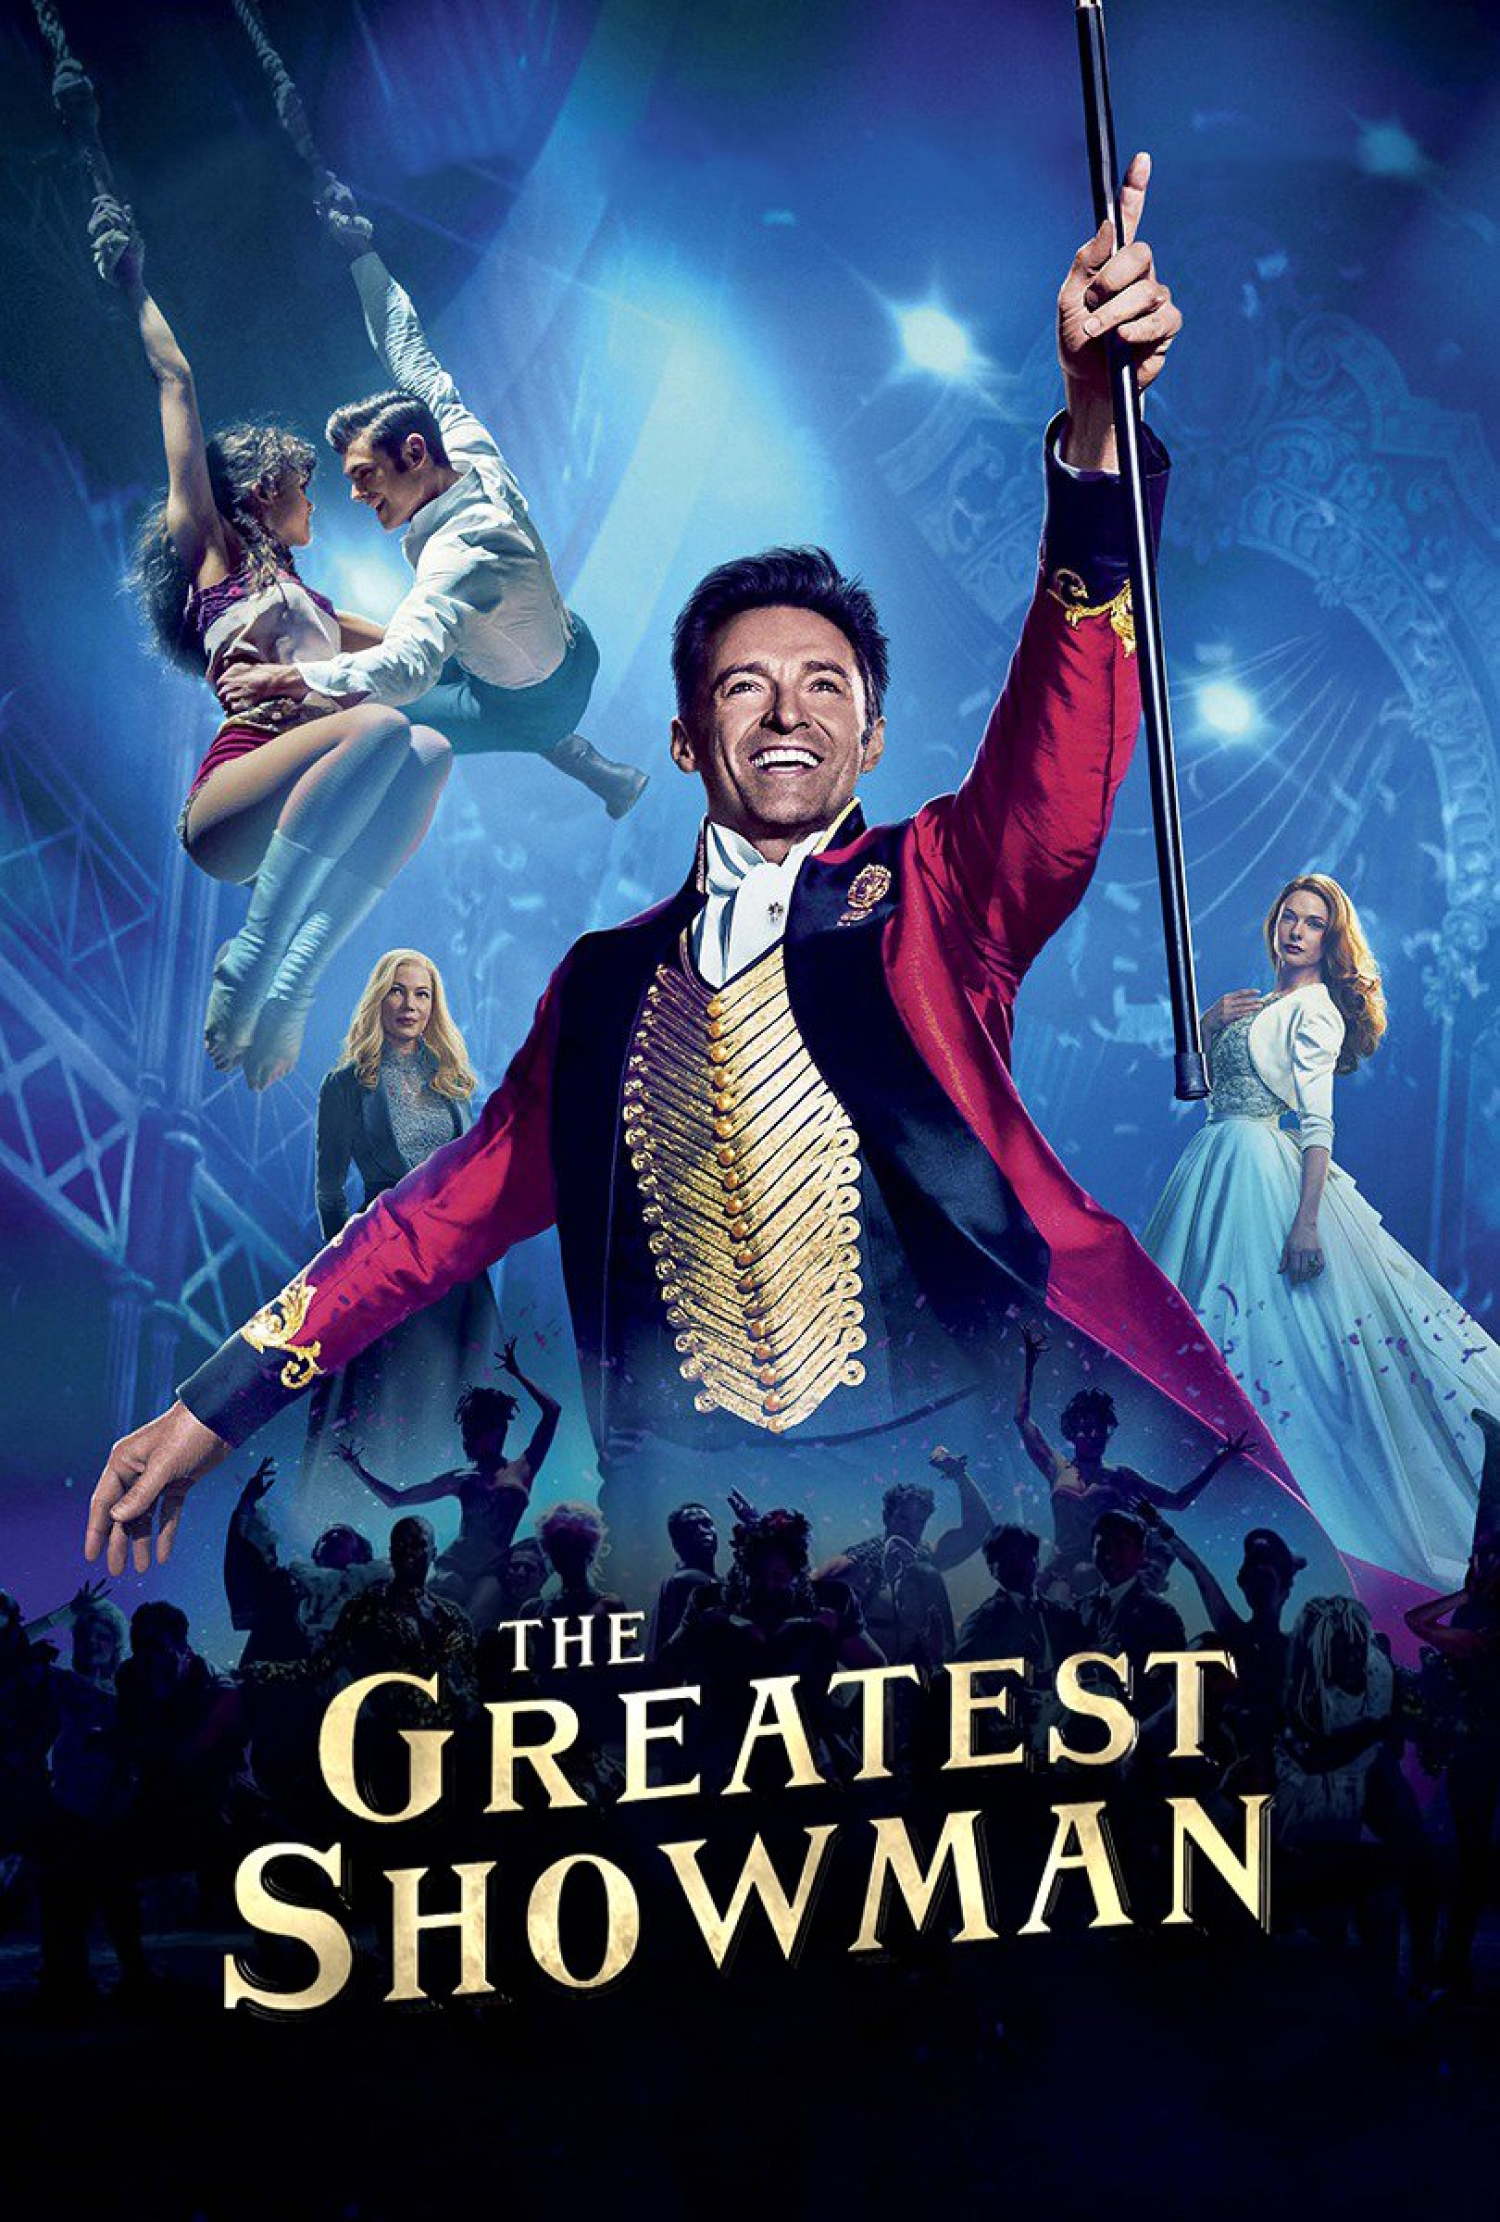 The Greatest Showman : un show coloré spectaculaire.6 min de lecture